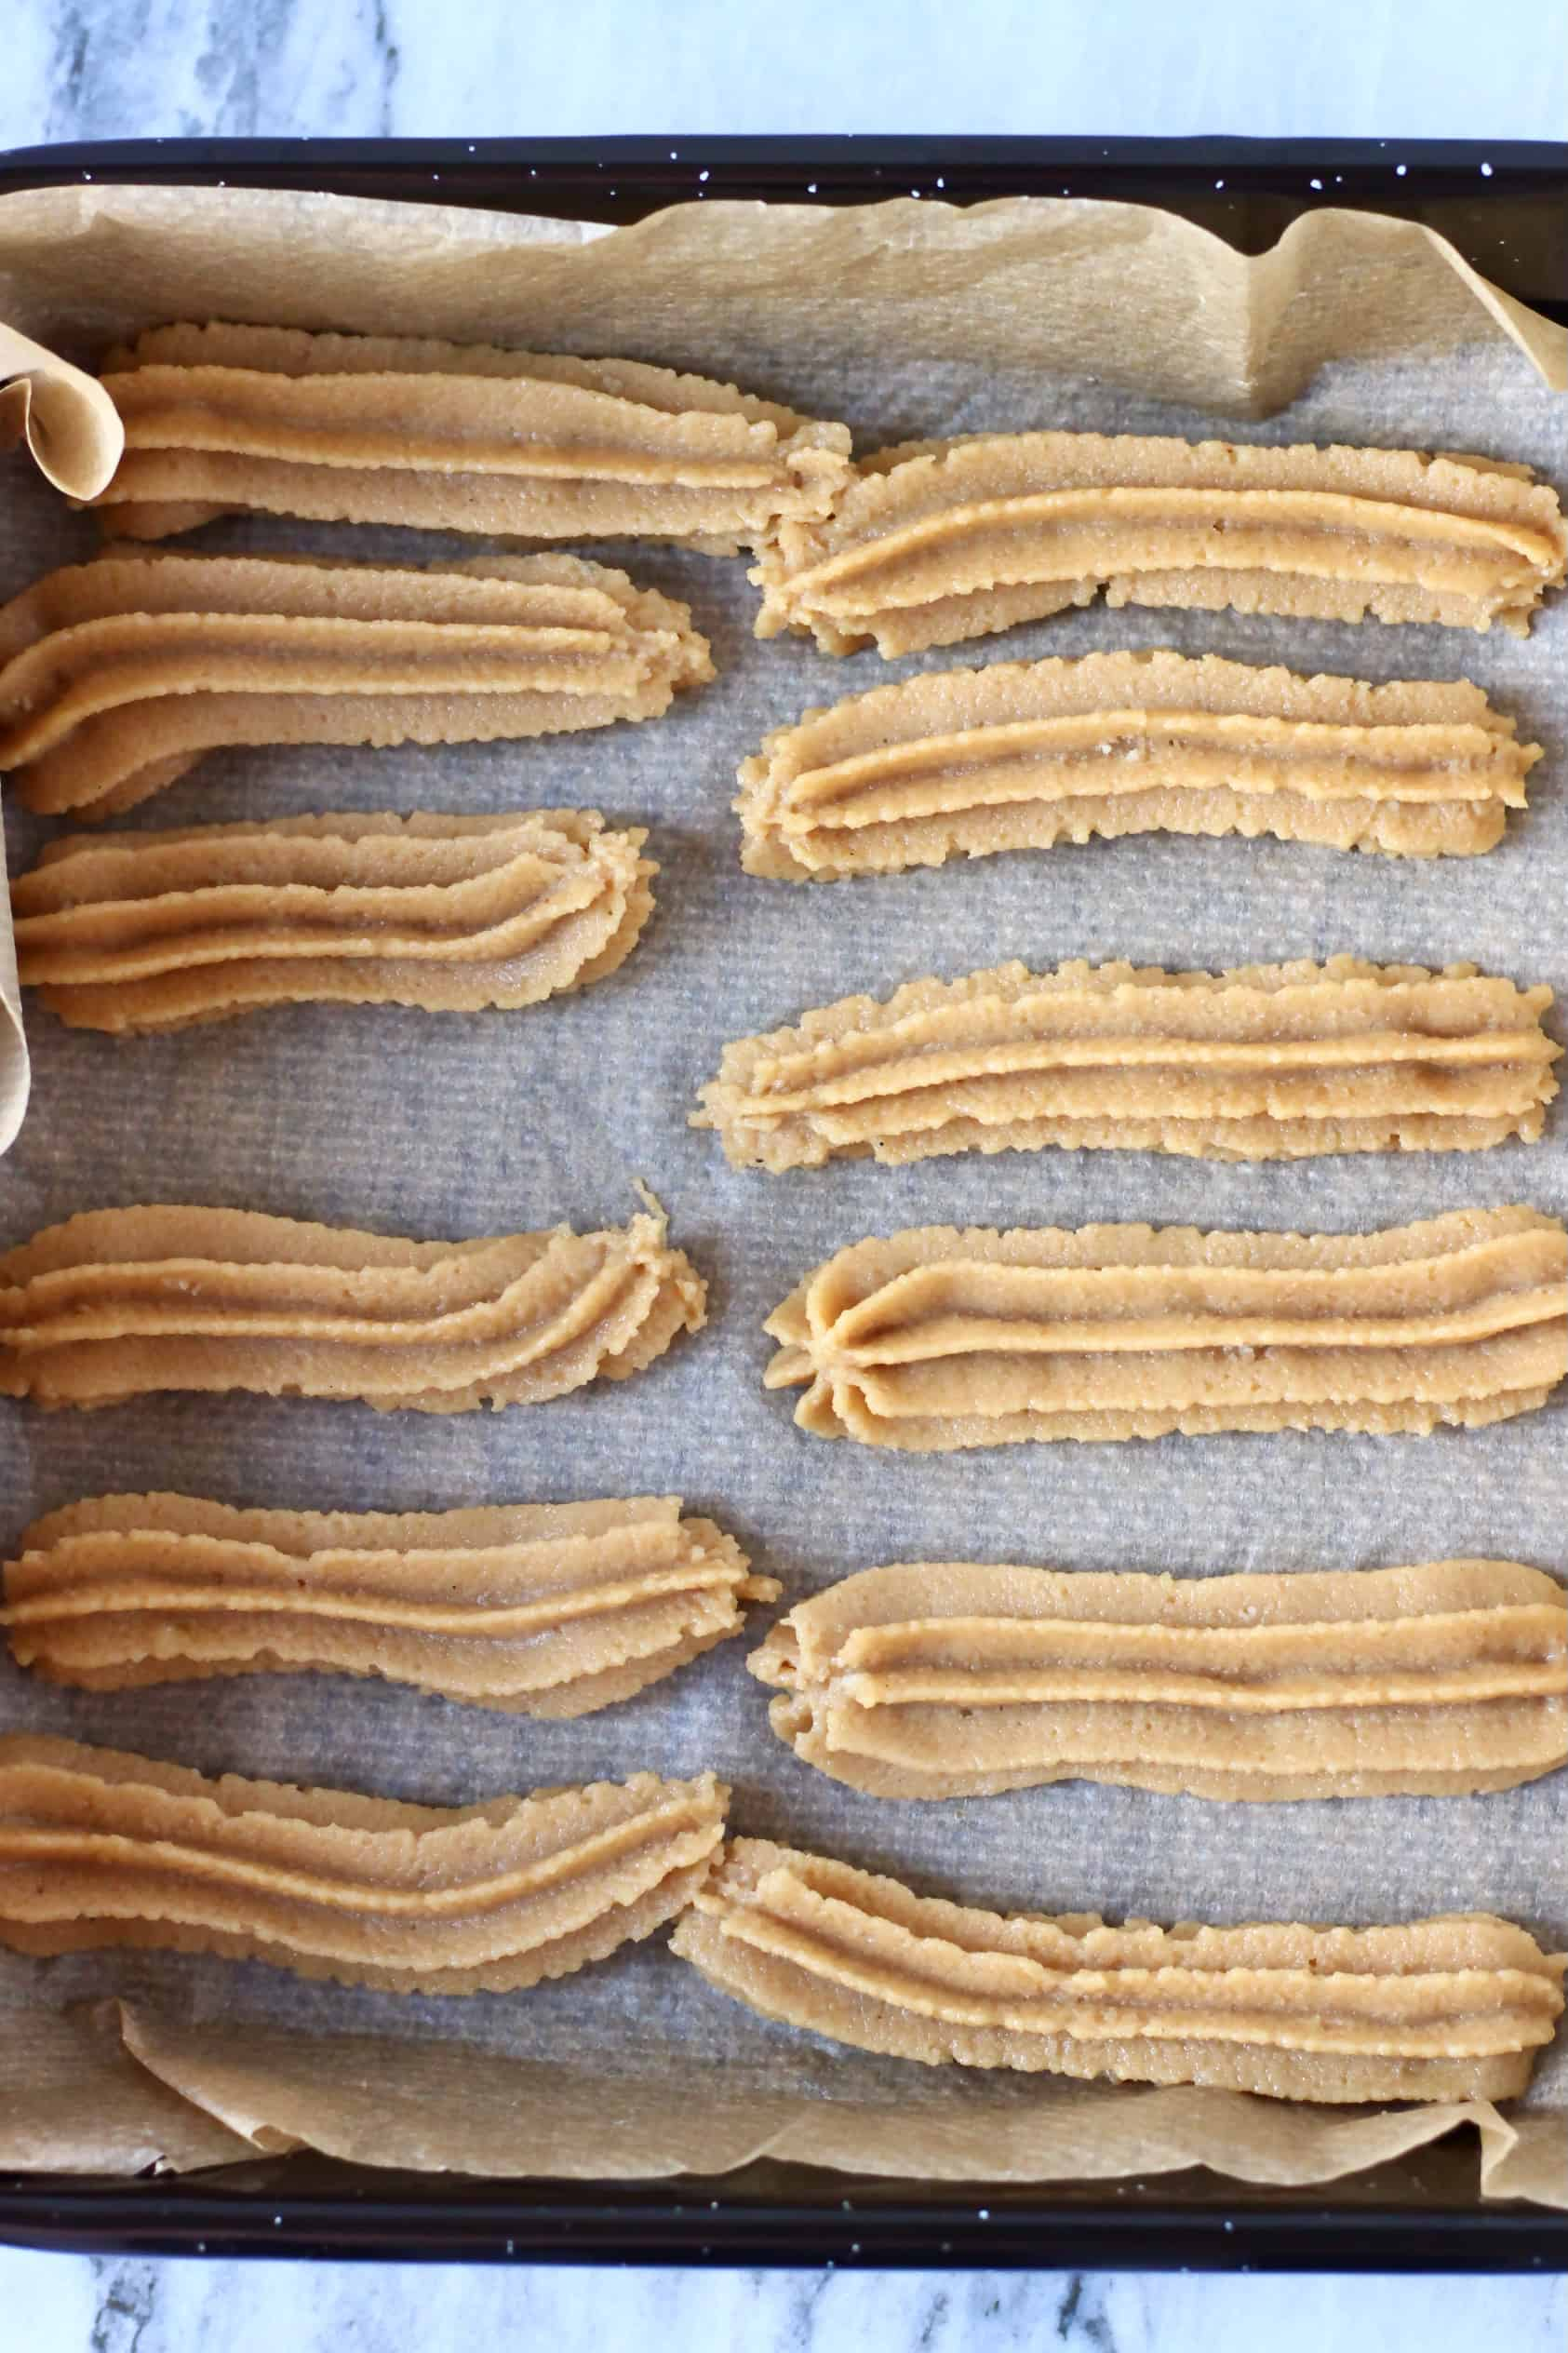 Twelve raw gluten-free vegan churros piped out onto a baking tray lined with baking paper